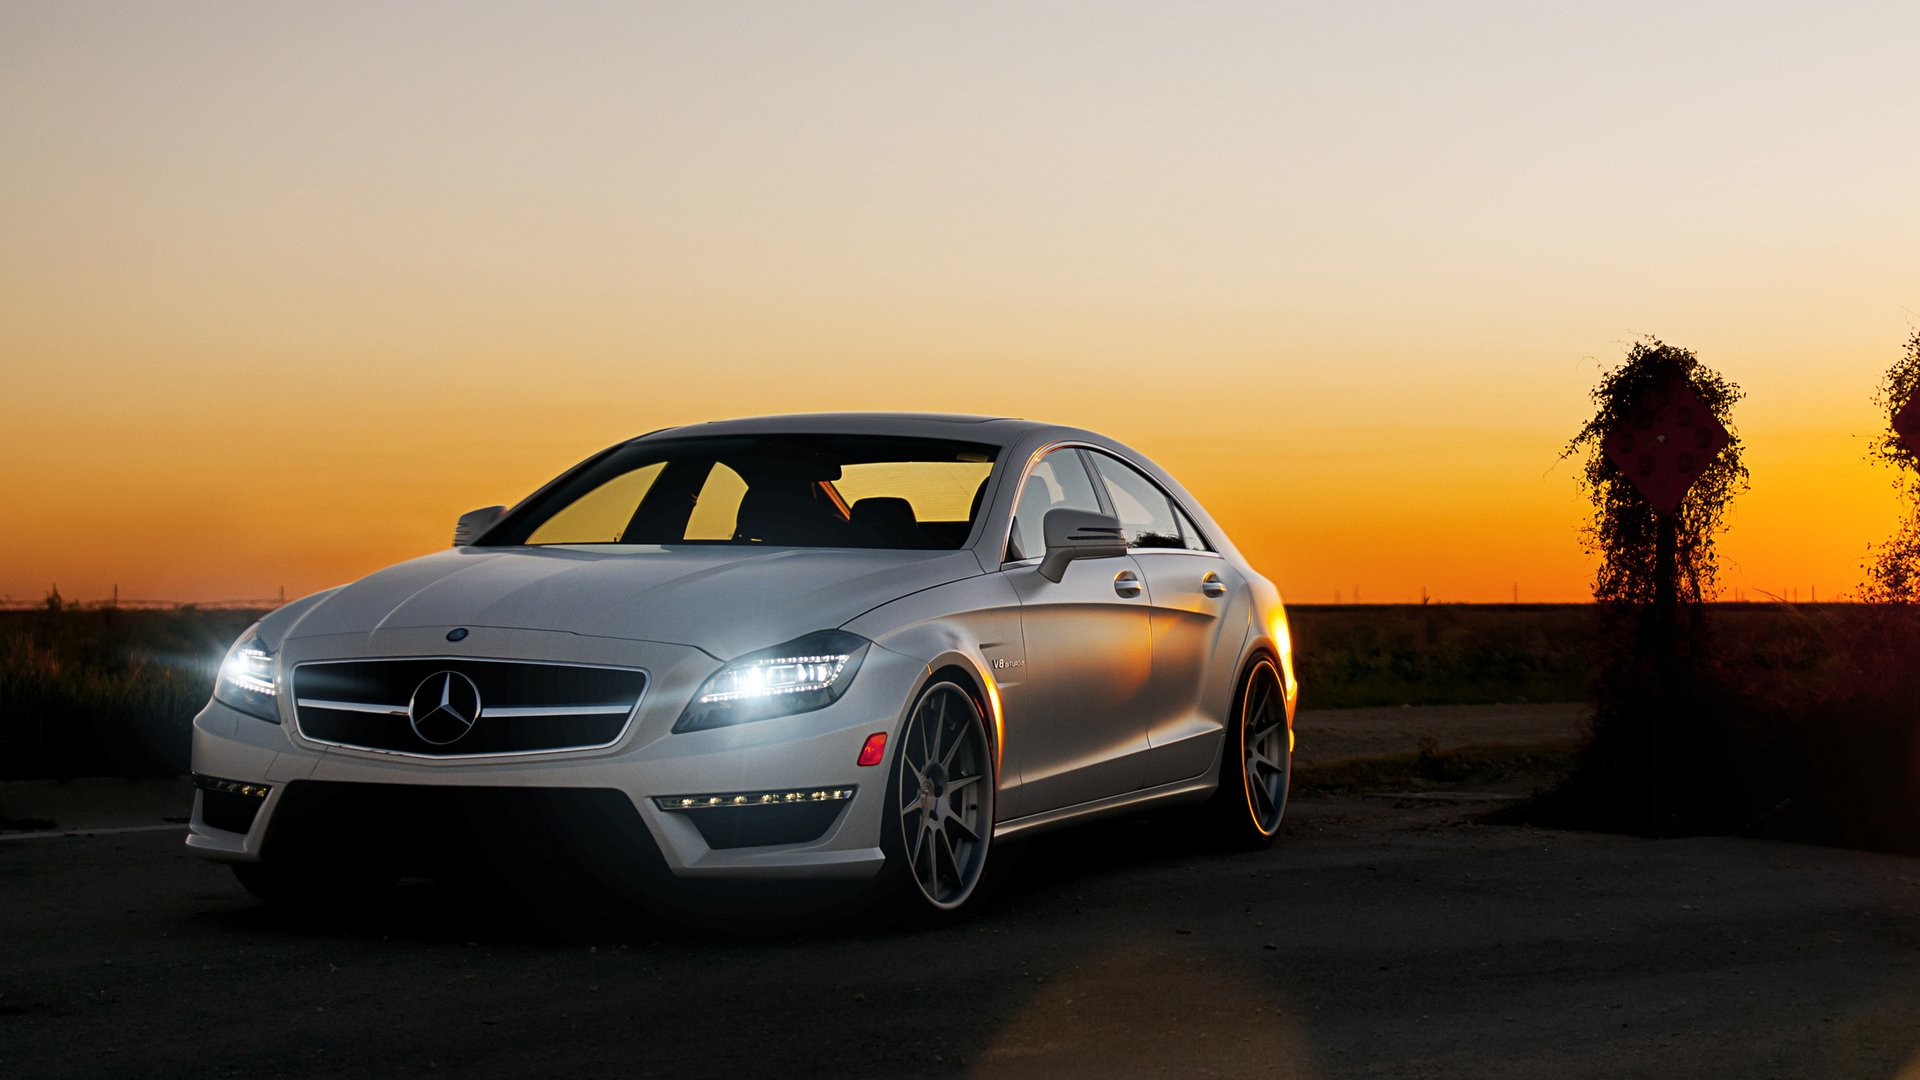 Mercedes Benz CLS63 Wallpapers HD Wallpapers 1920x1080